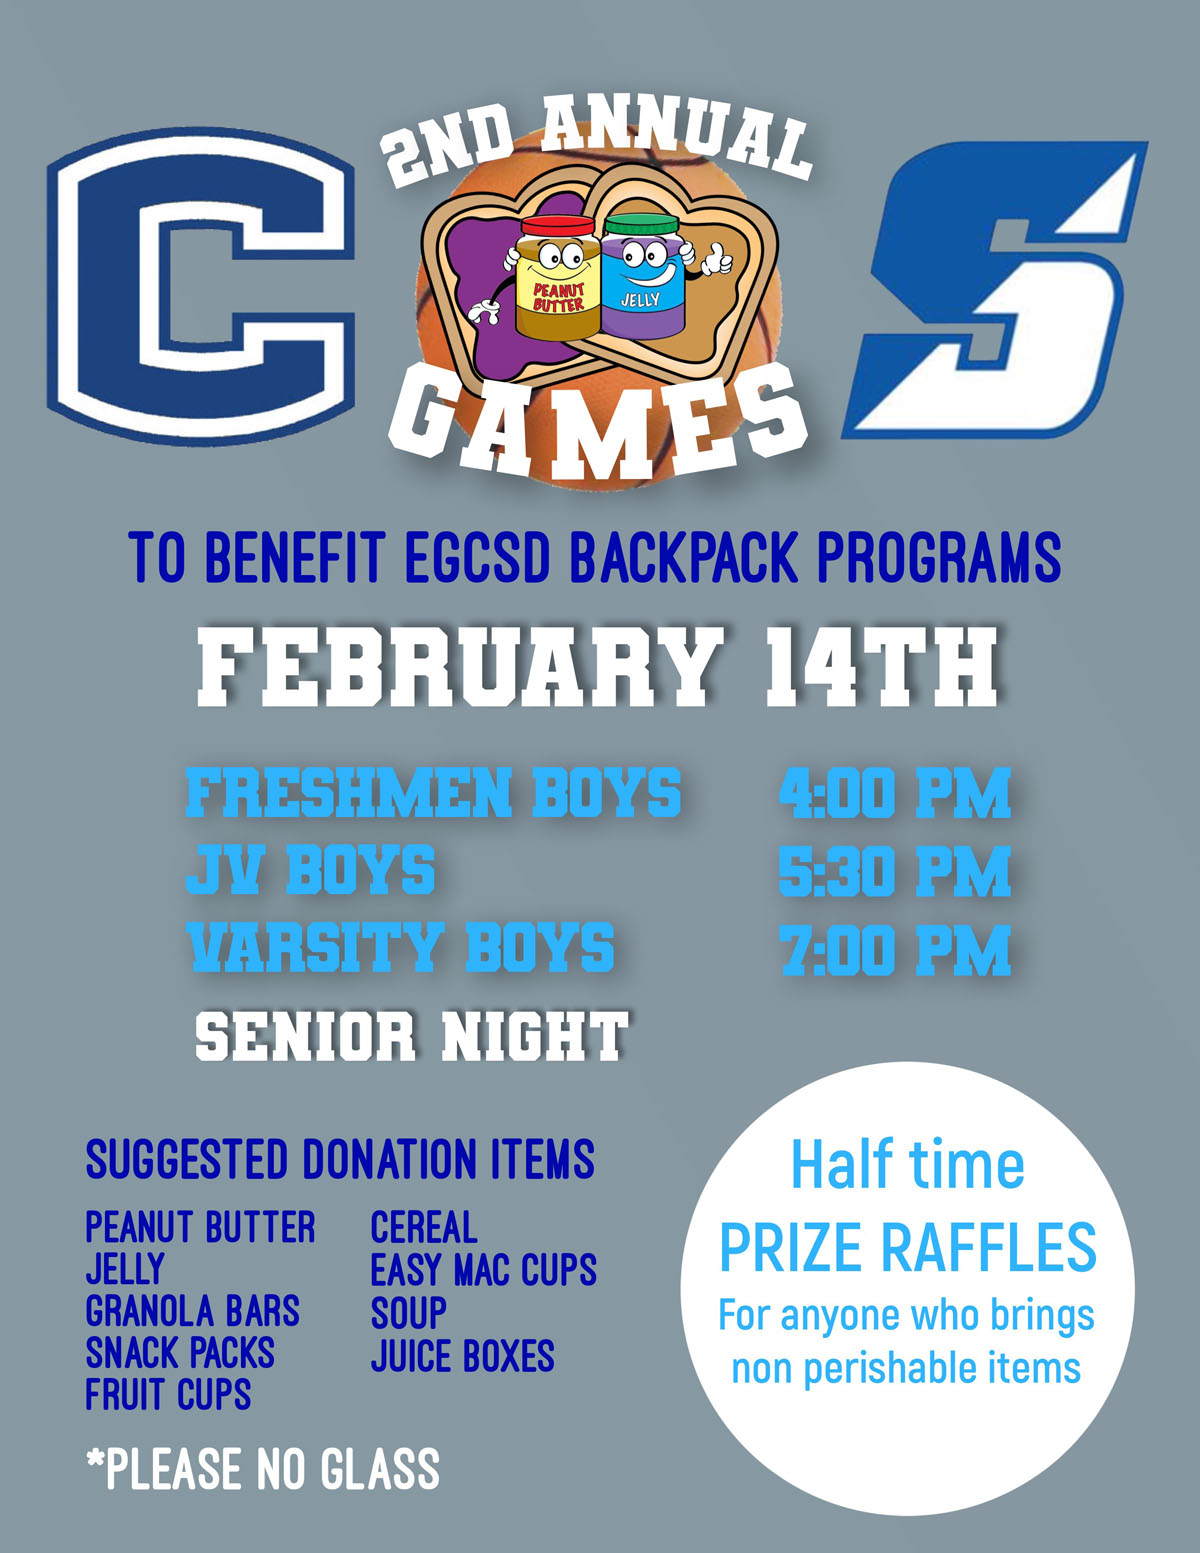 PB and J game flyer